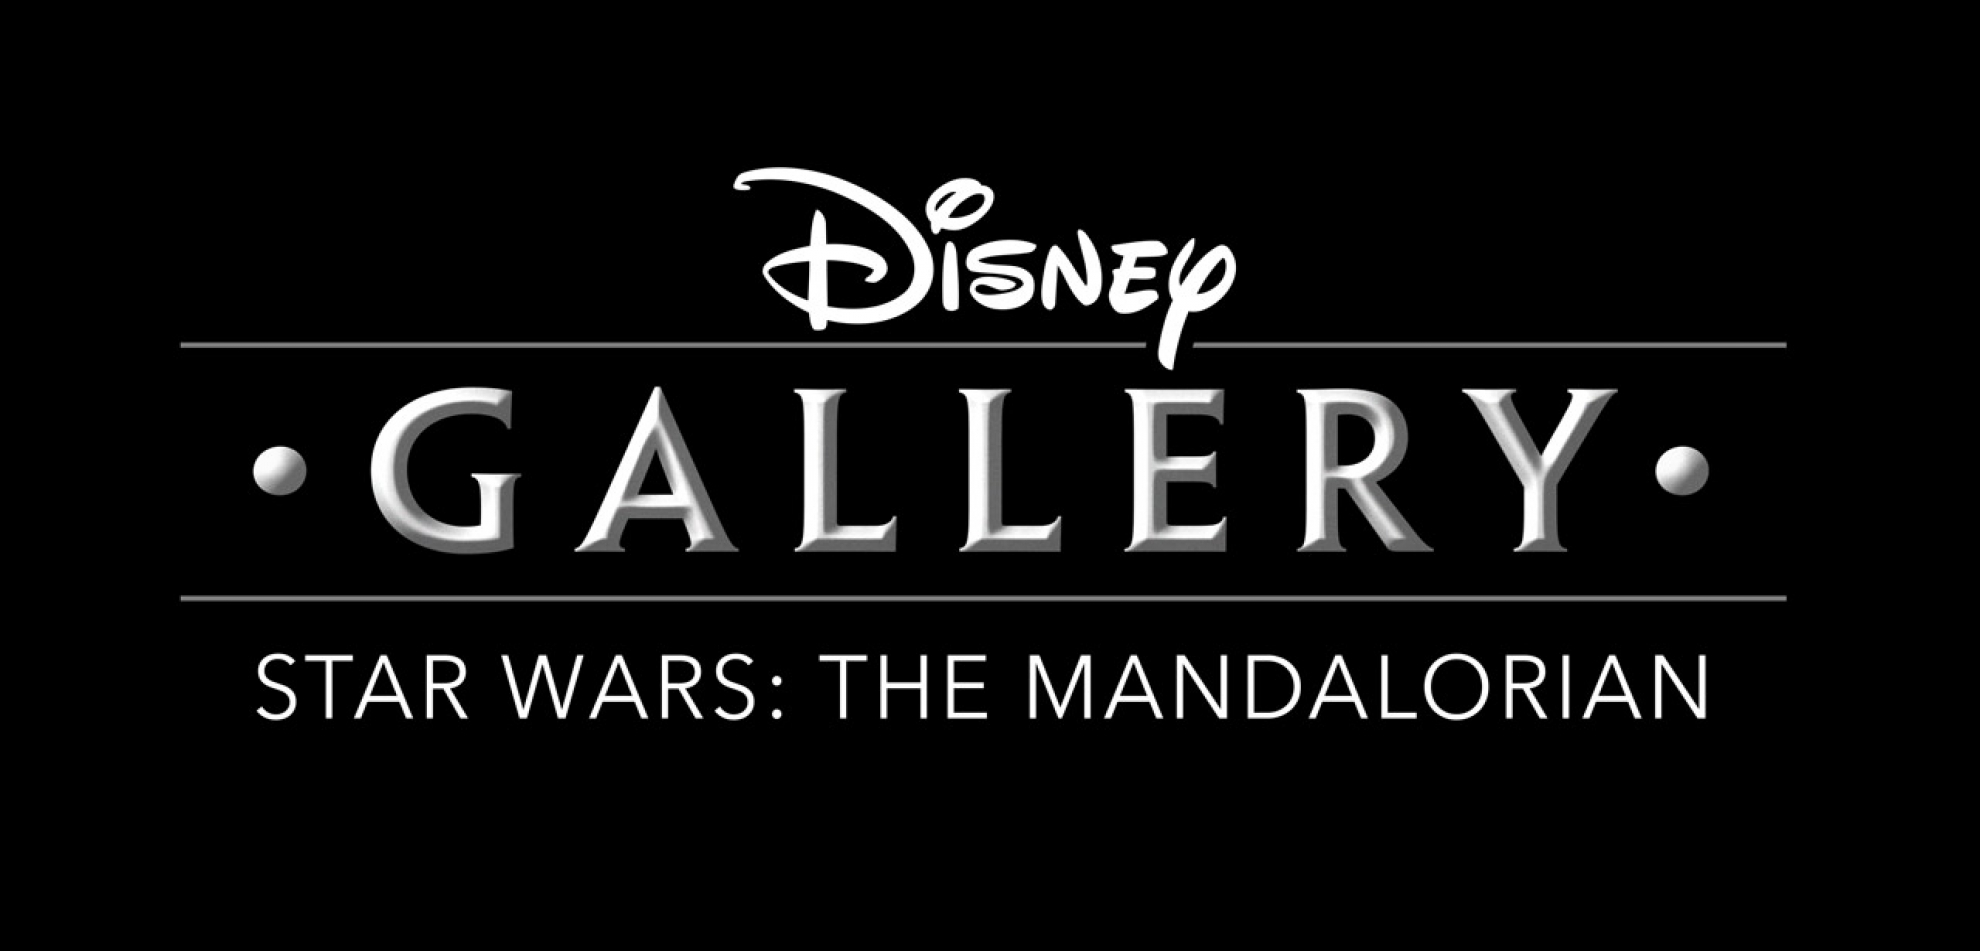 DISNEY GALLERY Logo The Mandalorian